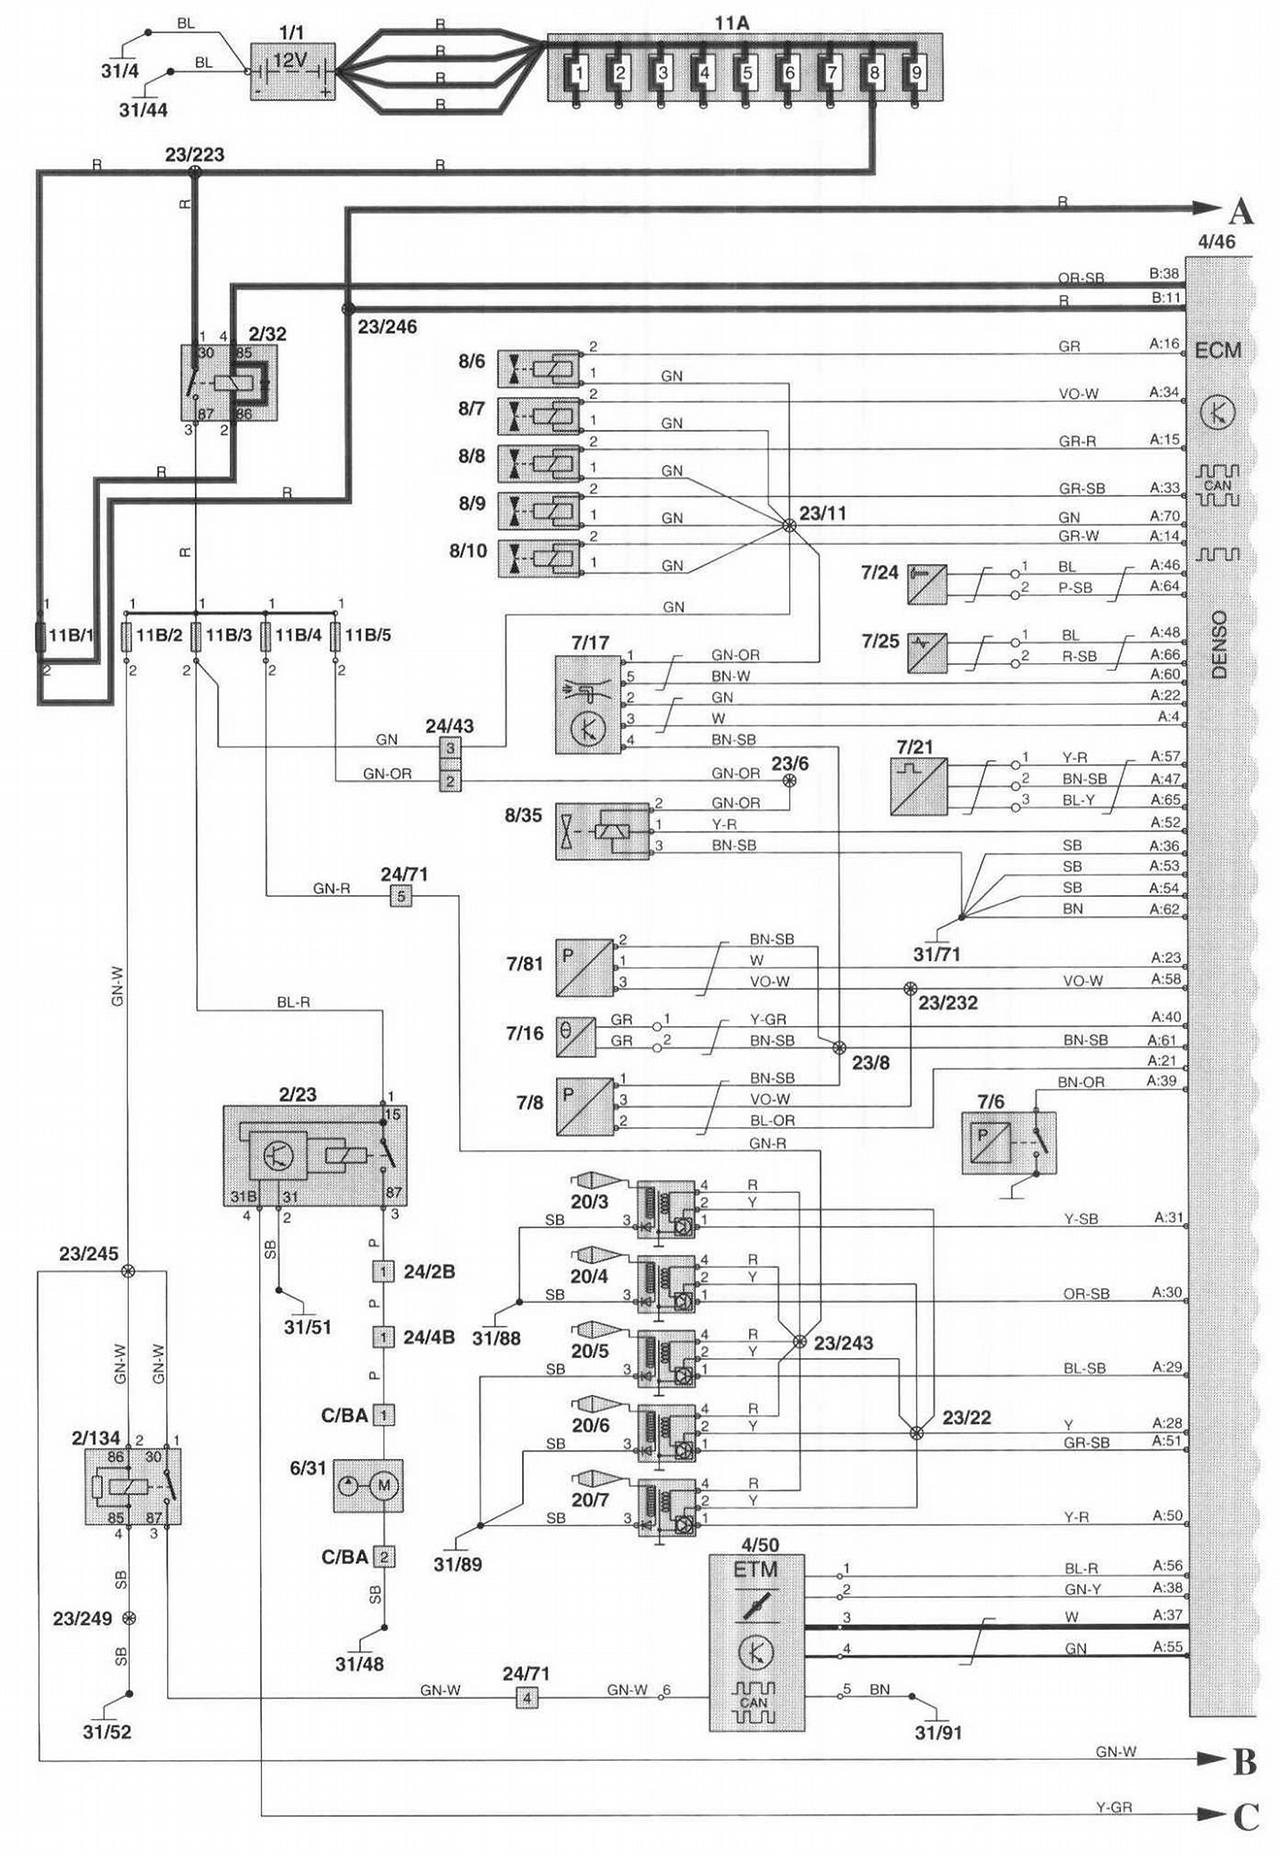 volvo 850 wiring diagram wiring diagramvolvo 850 instrument panel wiring diagram wiring diagram